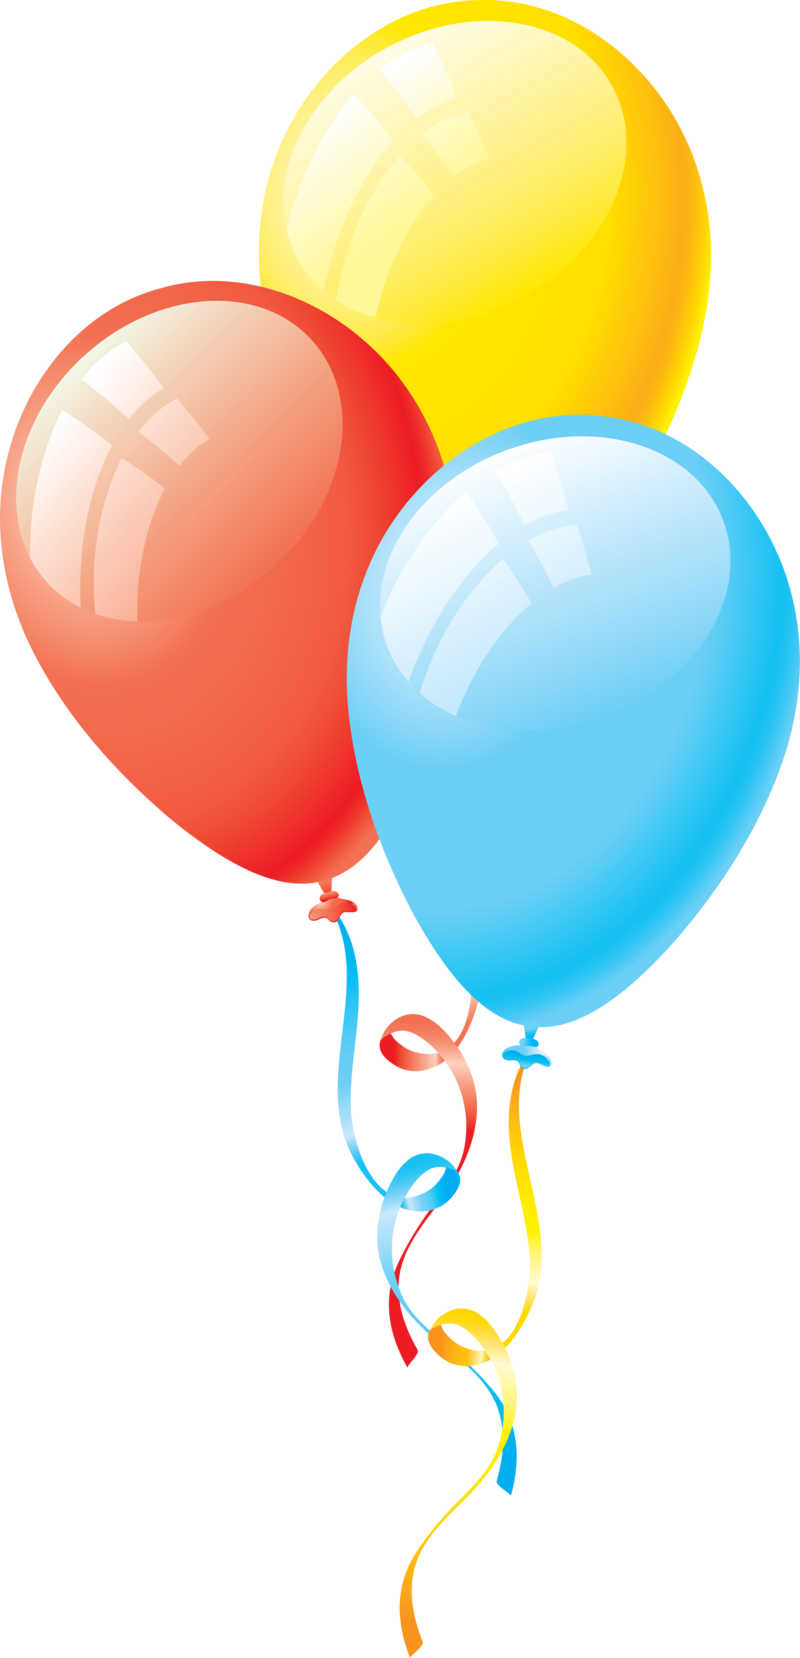 Download Free png Colorful balloon PNG image, free download.